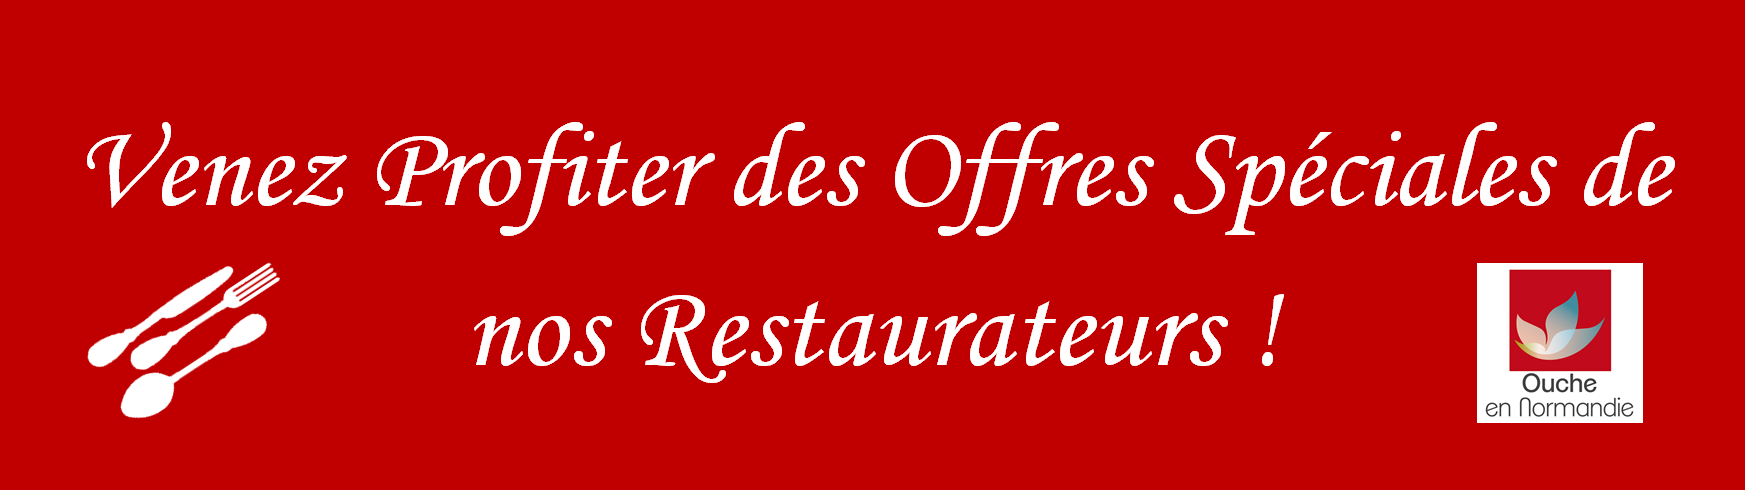 # Bons Plans Restaurateurs